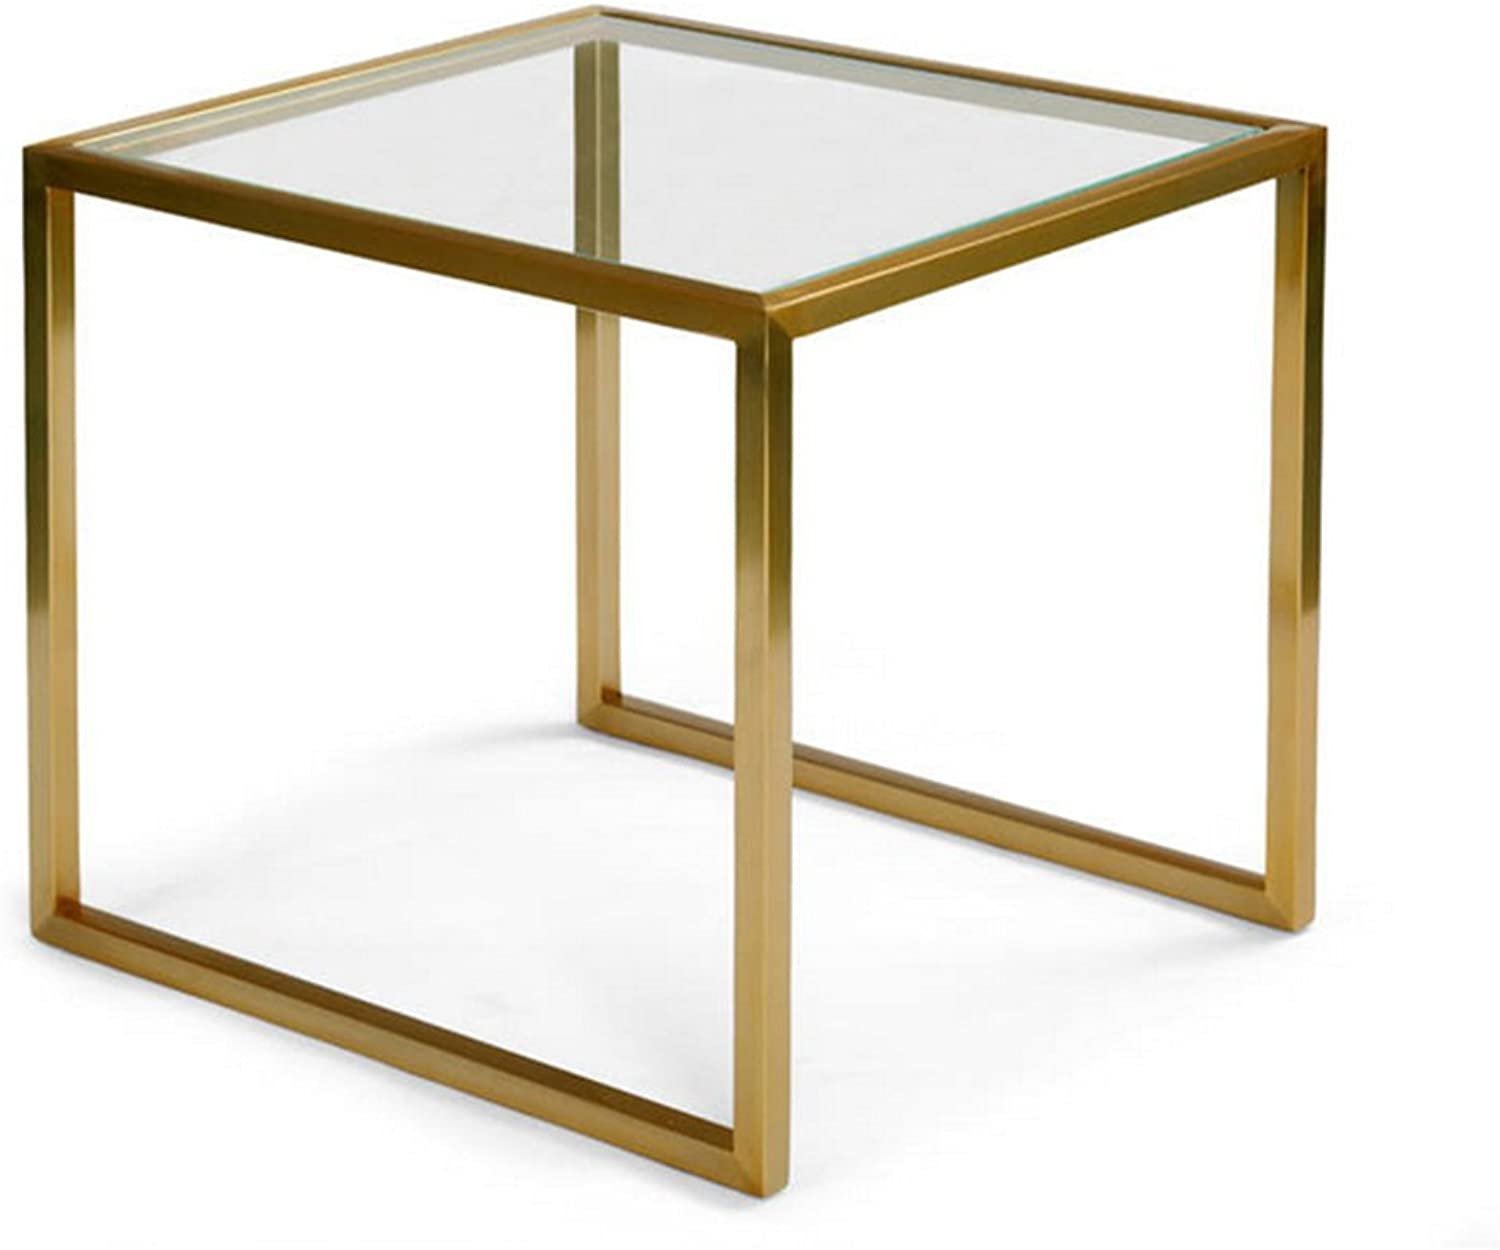 Side Table Simple Wrought Iron Glass Edge Creative Sofa Table Living Room Bedroom Small Tea Table (color   gold, Size   45  45  50cm)